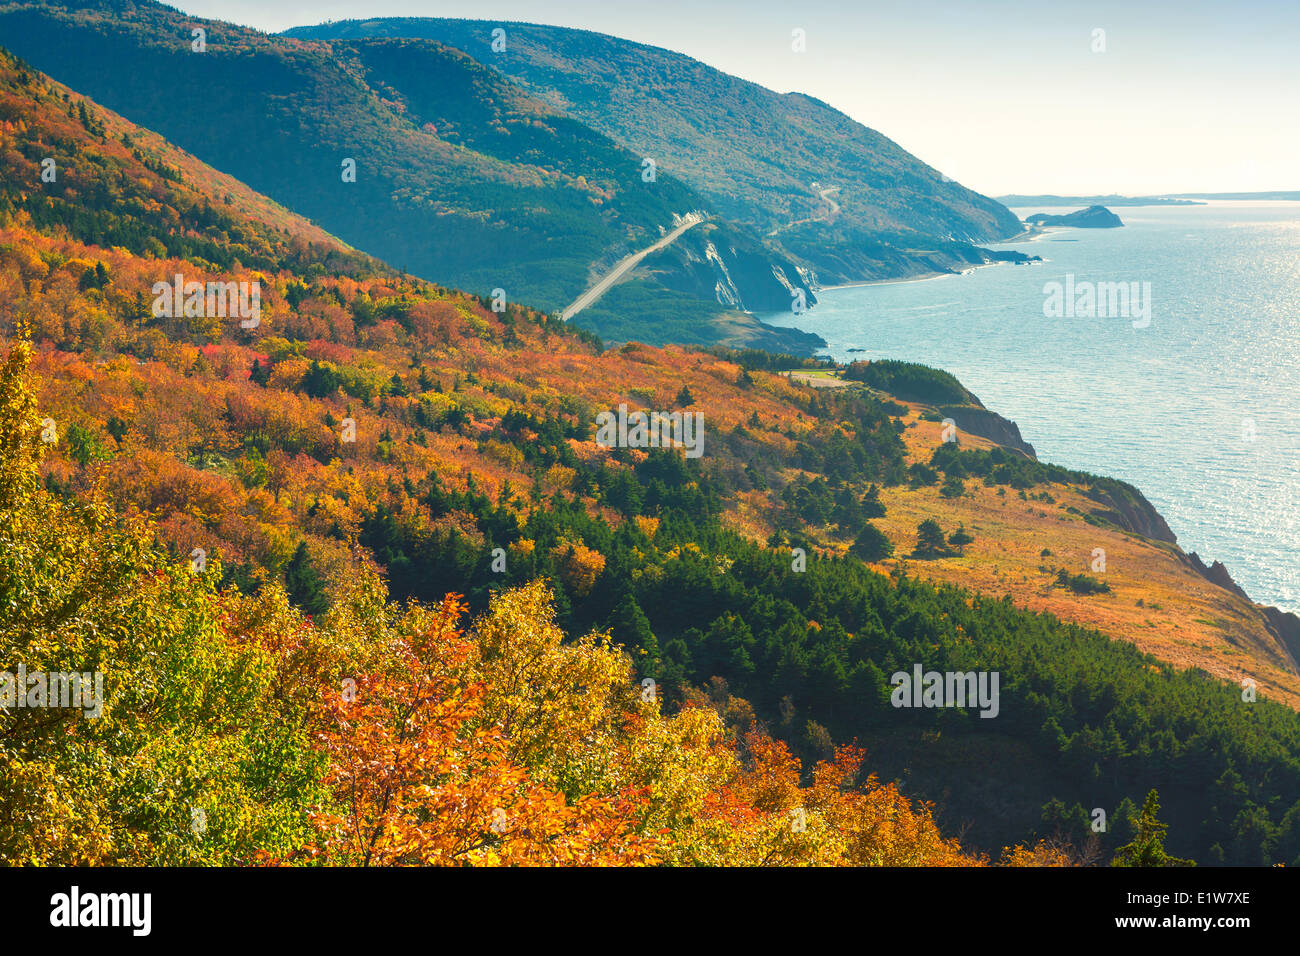 View of Cape Rouge, Cape Breton Highlands National Park, Cape Breton, Nova Scotia, Canada - Stock Image